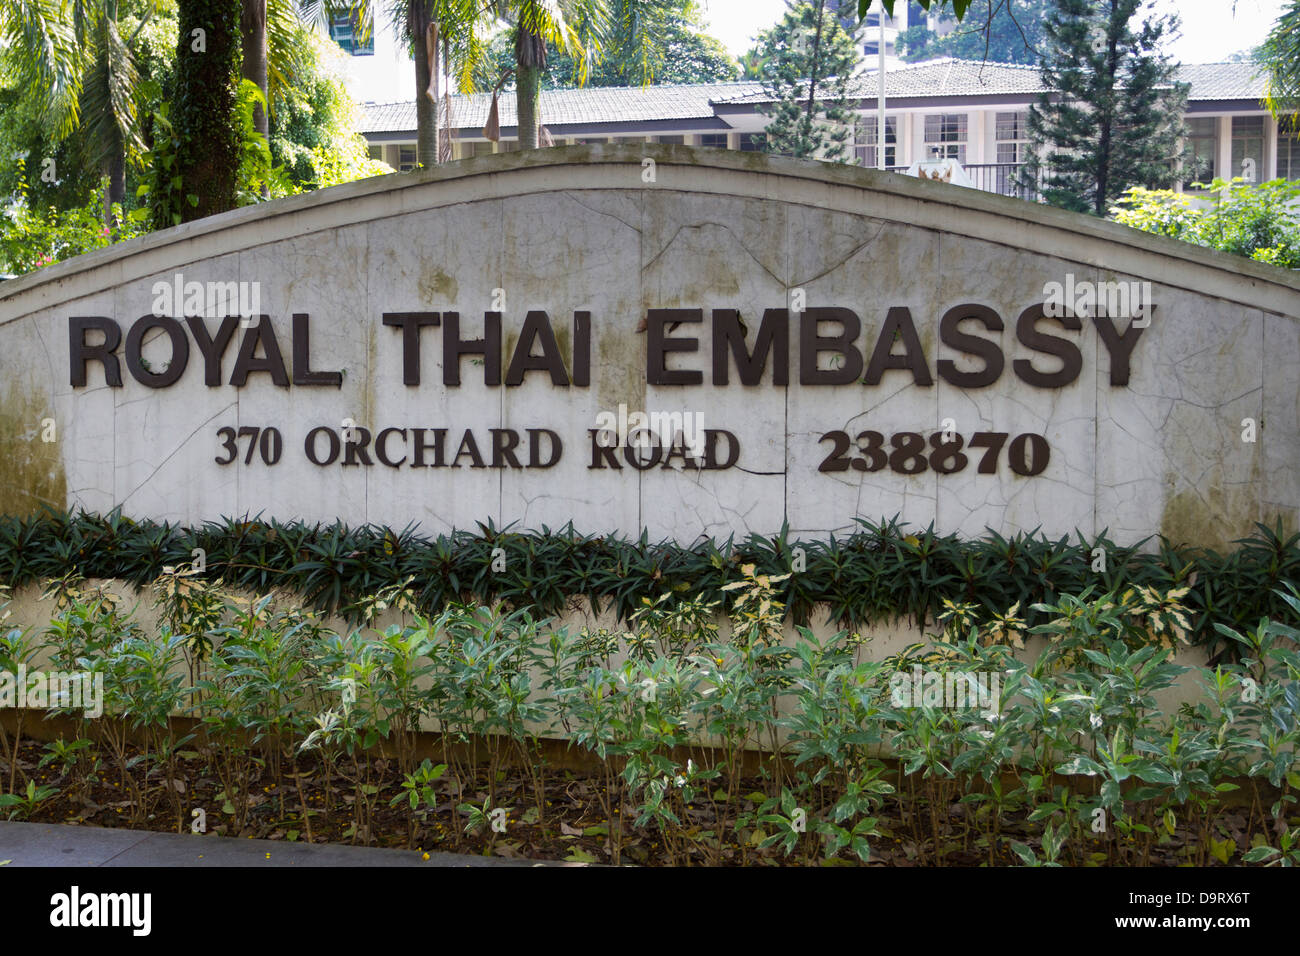 Royal Thai Embassy, Orchard Road, Singapore - Stock Image